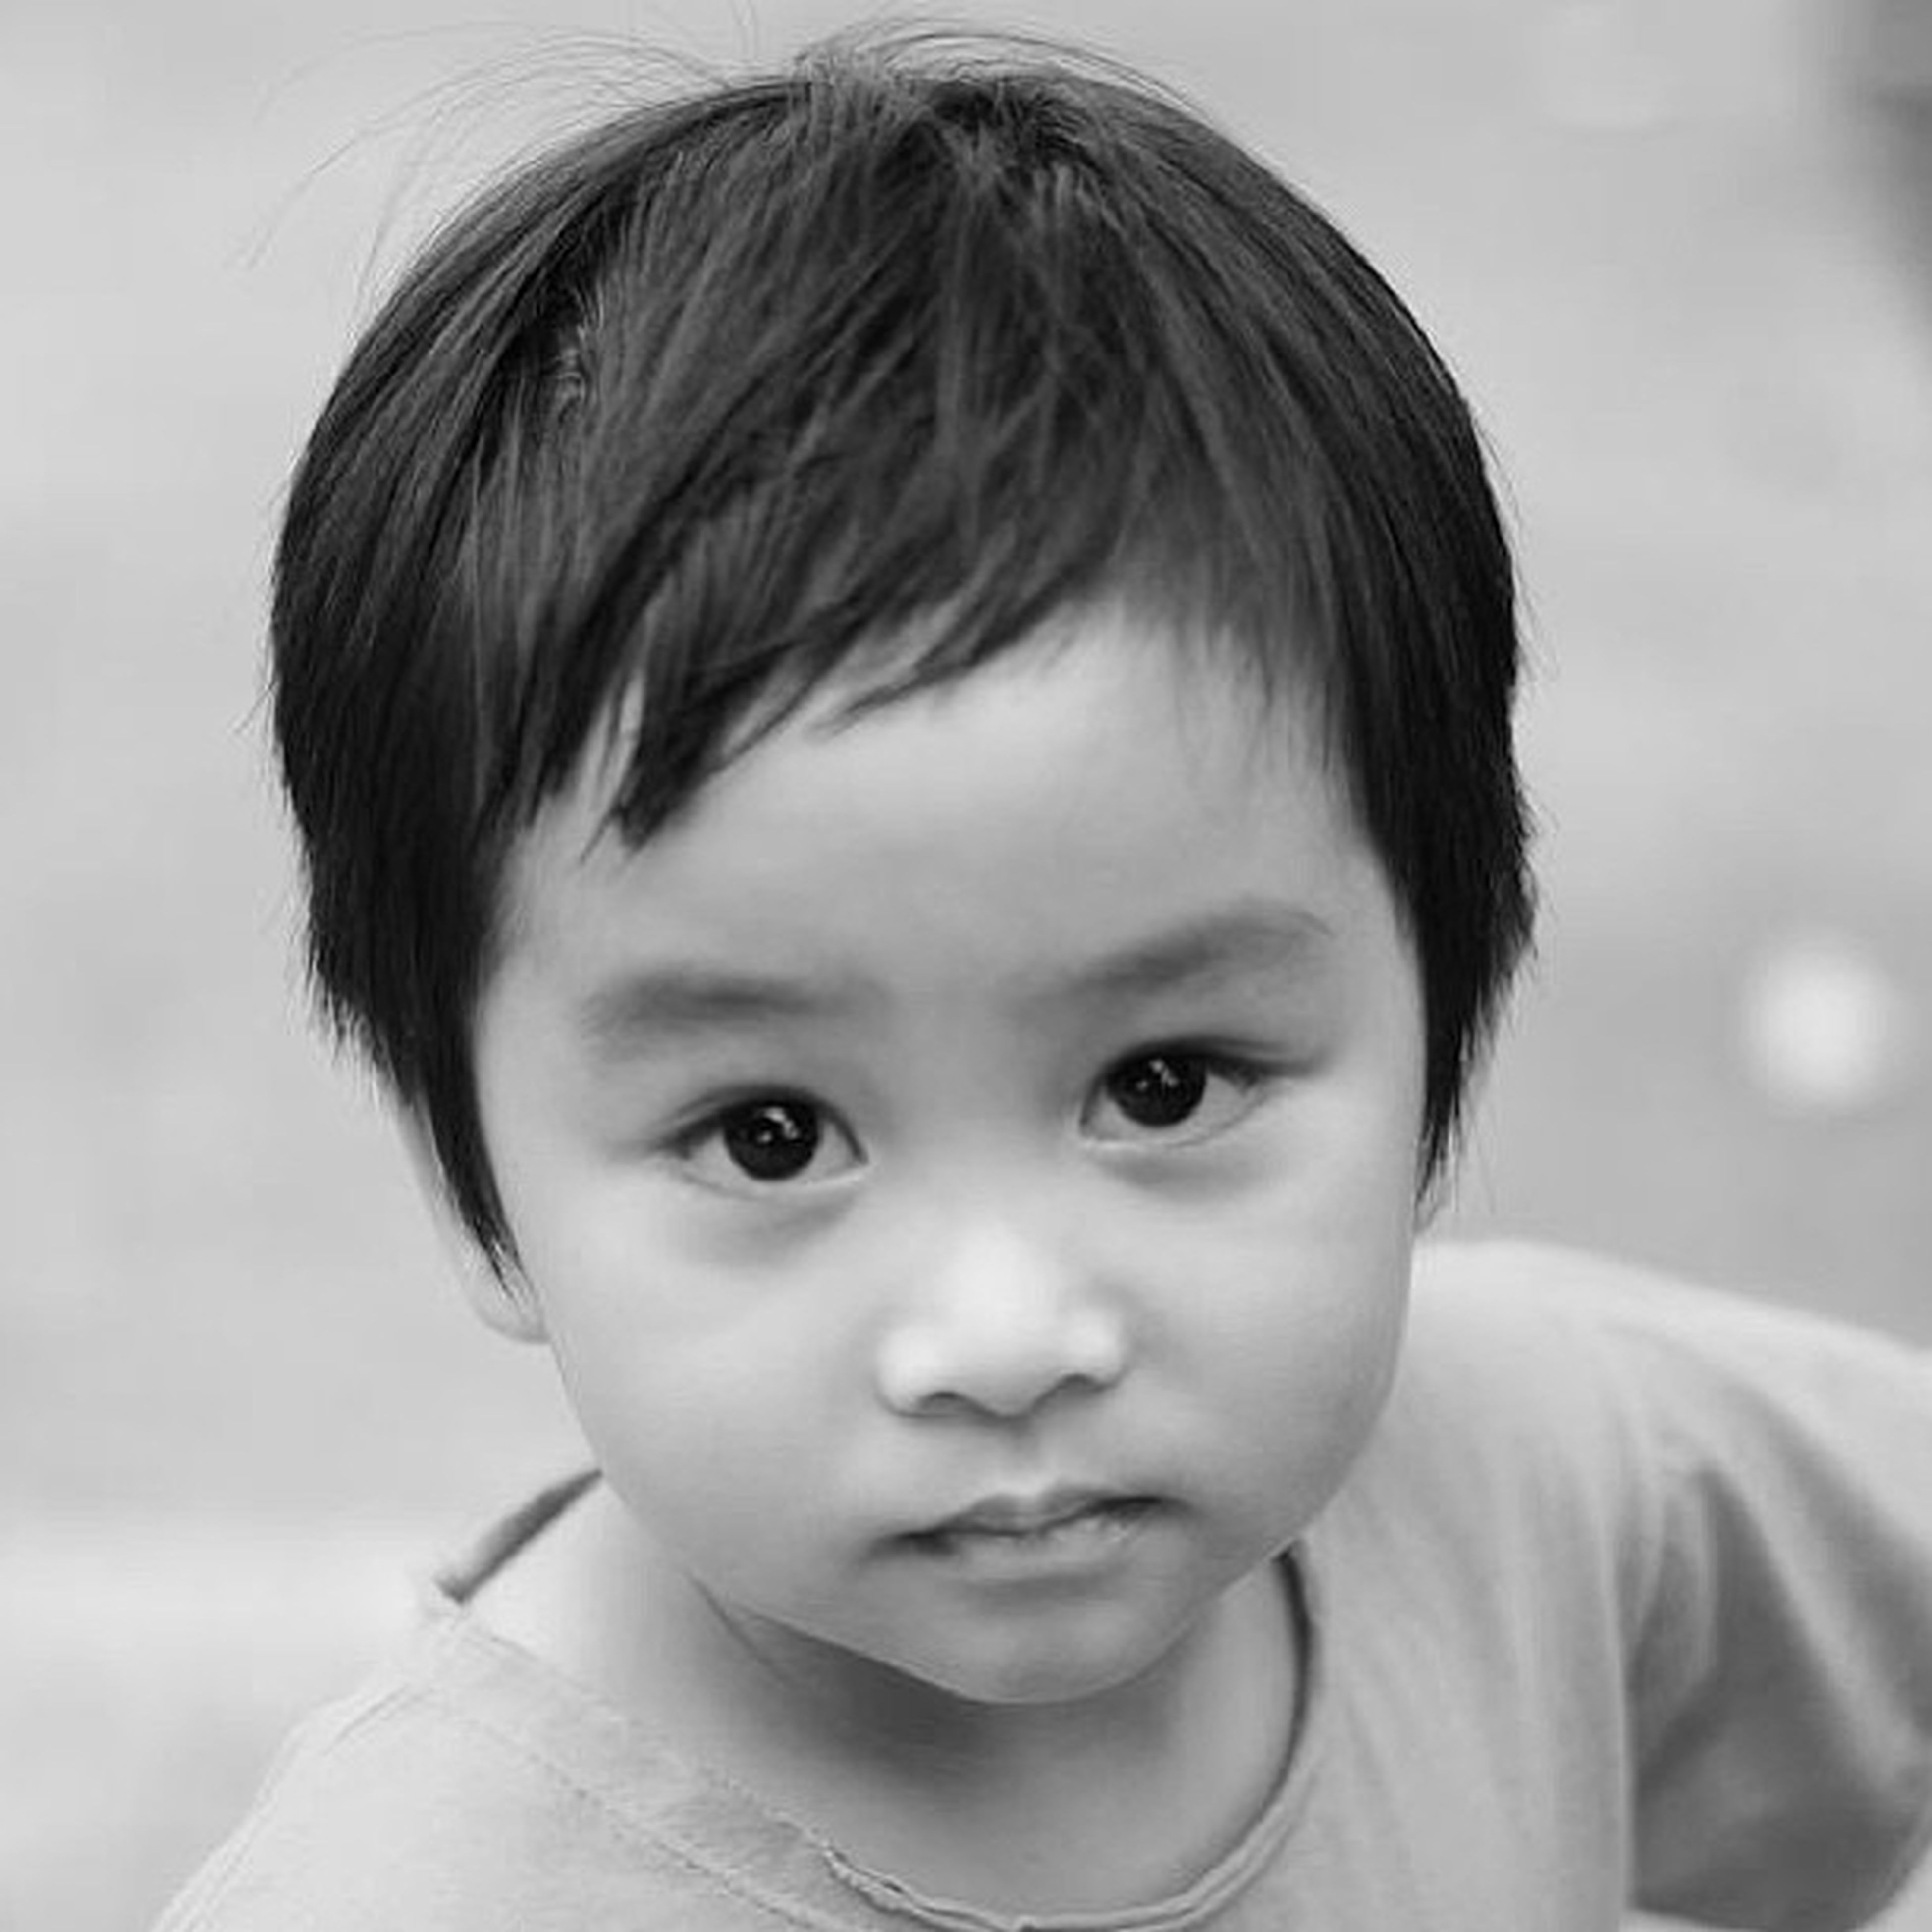 childhood, elementary age, innocence, cute, person, headshot, boys, girls, close-up, lifestyles, focus on foreground, looking at camera, portrait, leisure activity, indoors, front view, babyhood, head and shoulders